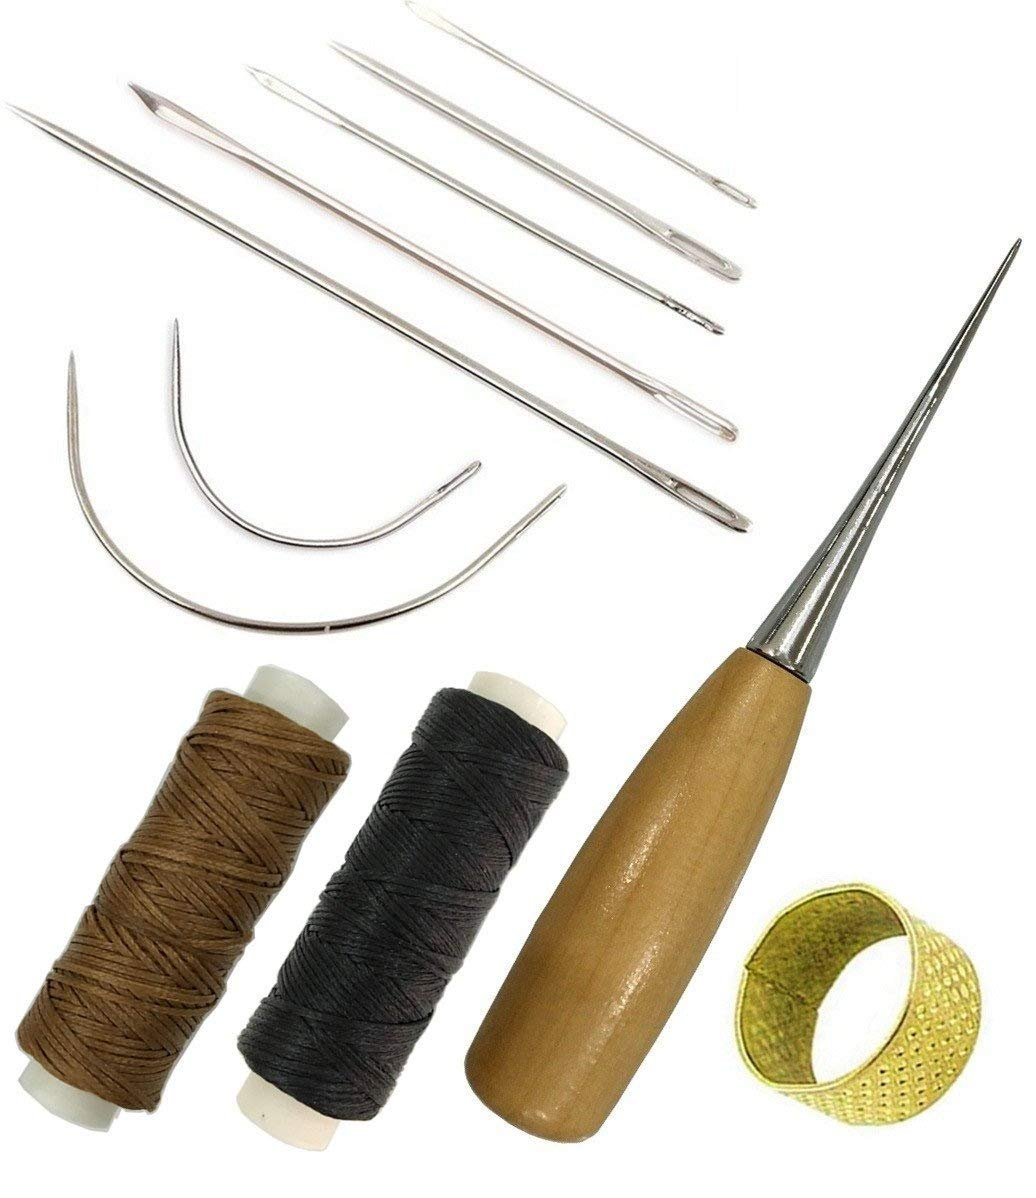 7 Pieces Curved Upholstery Hand Sewing Needles Sewing Needles with Leather Waxed Thread Cord 1 Brown 1 Black and Drilling Awl and Thimble for Leather Repair Deryunny 4336935441